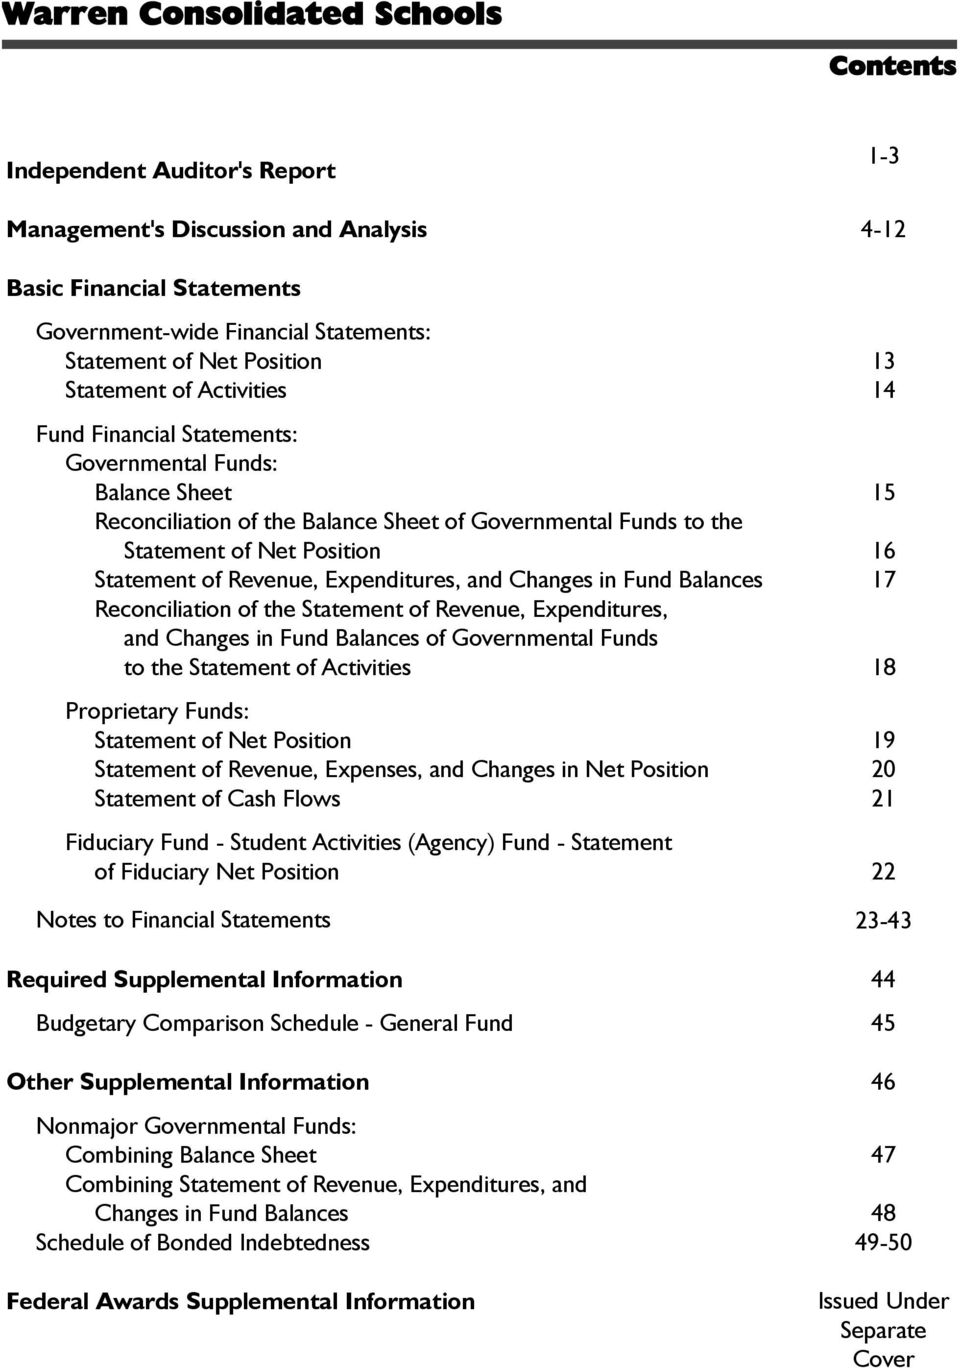 Expenditures, and Changes in Fund Balances 17 Reconciliation of the Statement of Revenue, Expenditures, and Changes in Fund Balances of Governmental Funds to the Statement of Activities 18